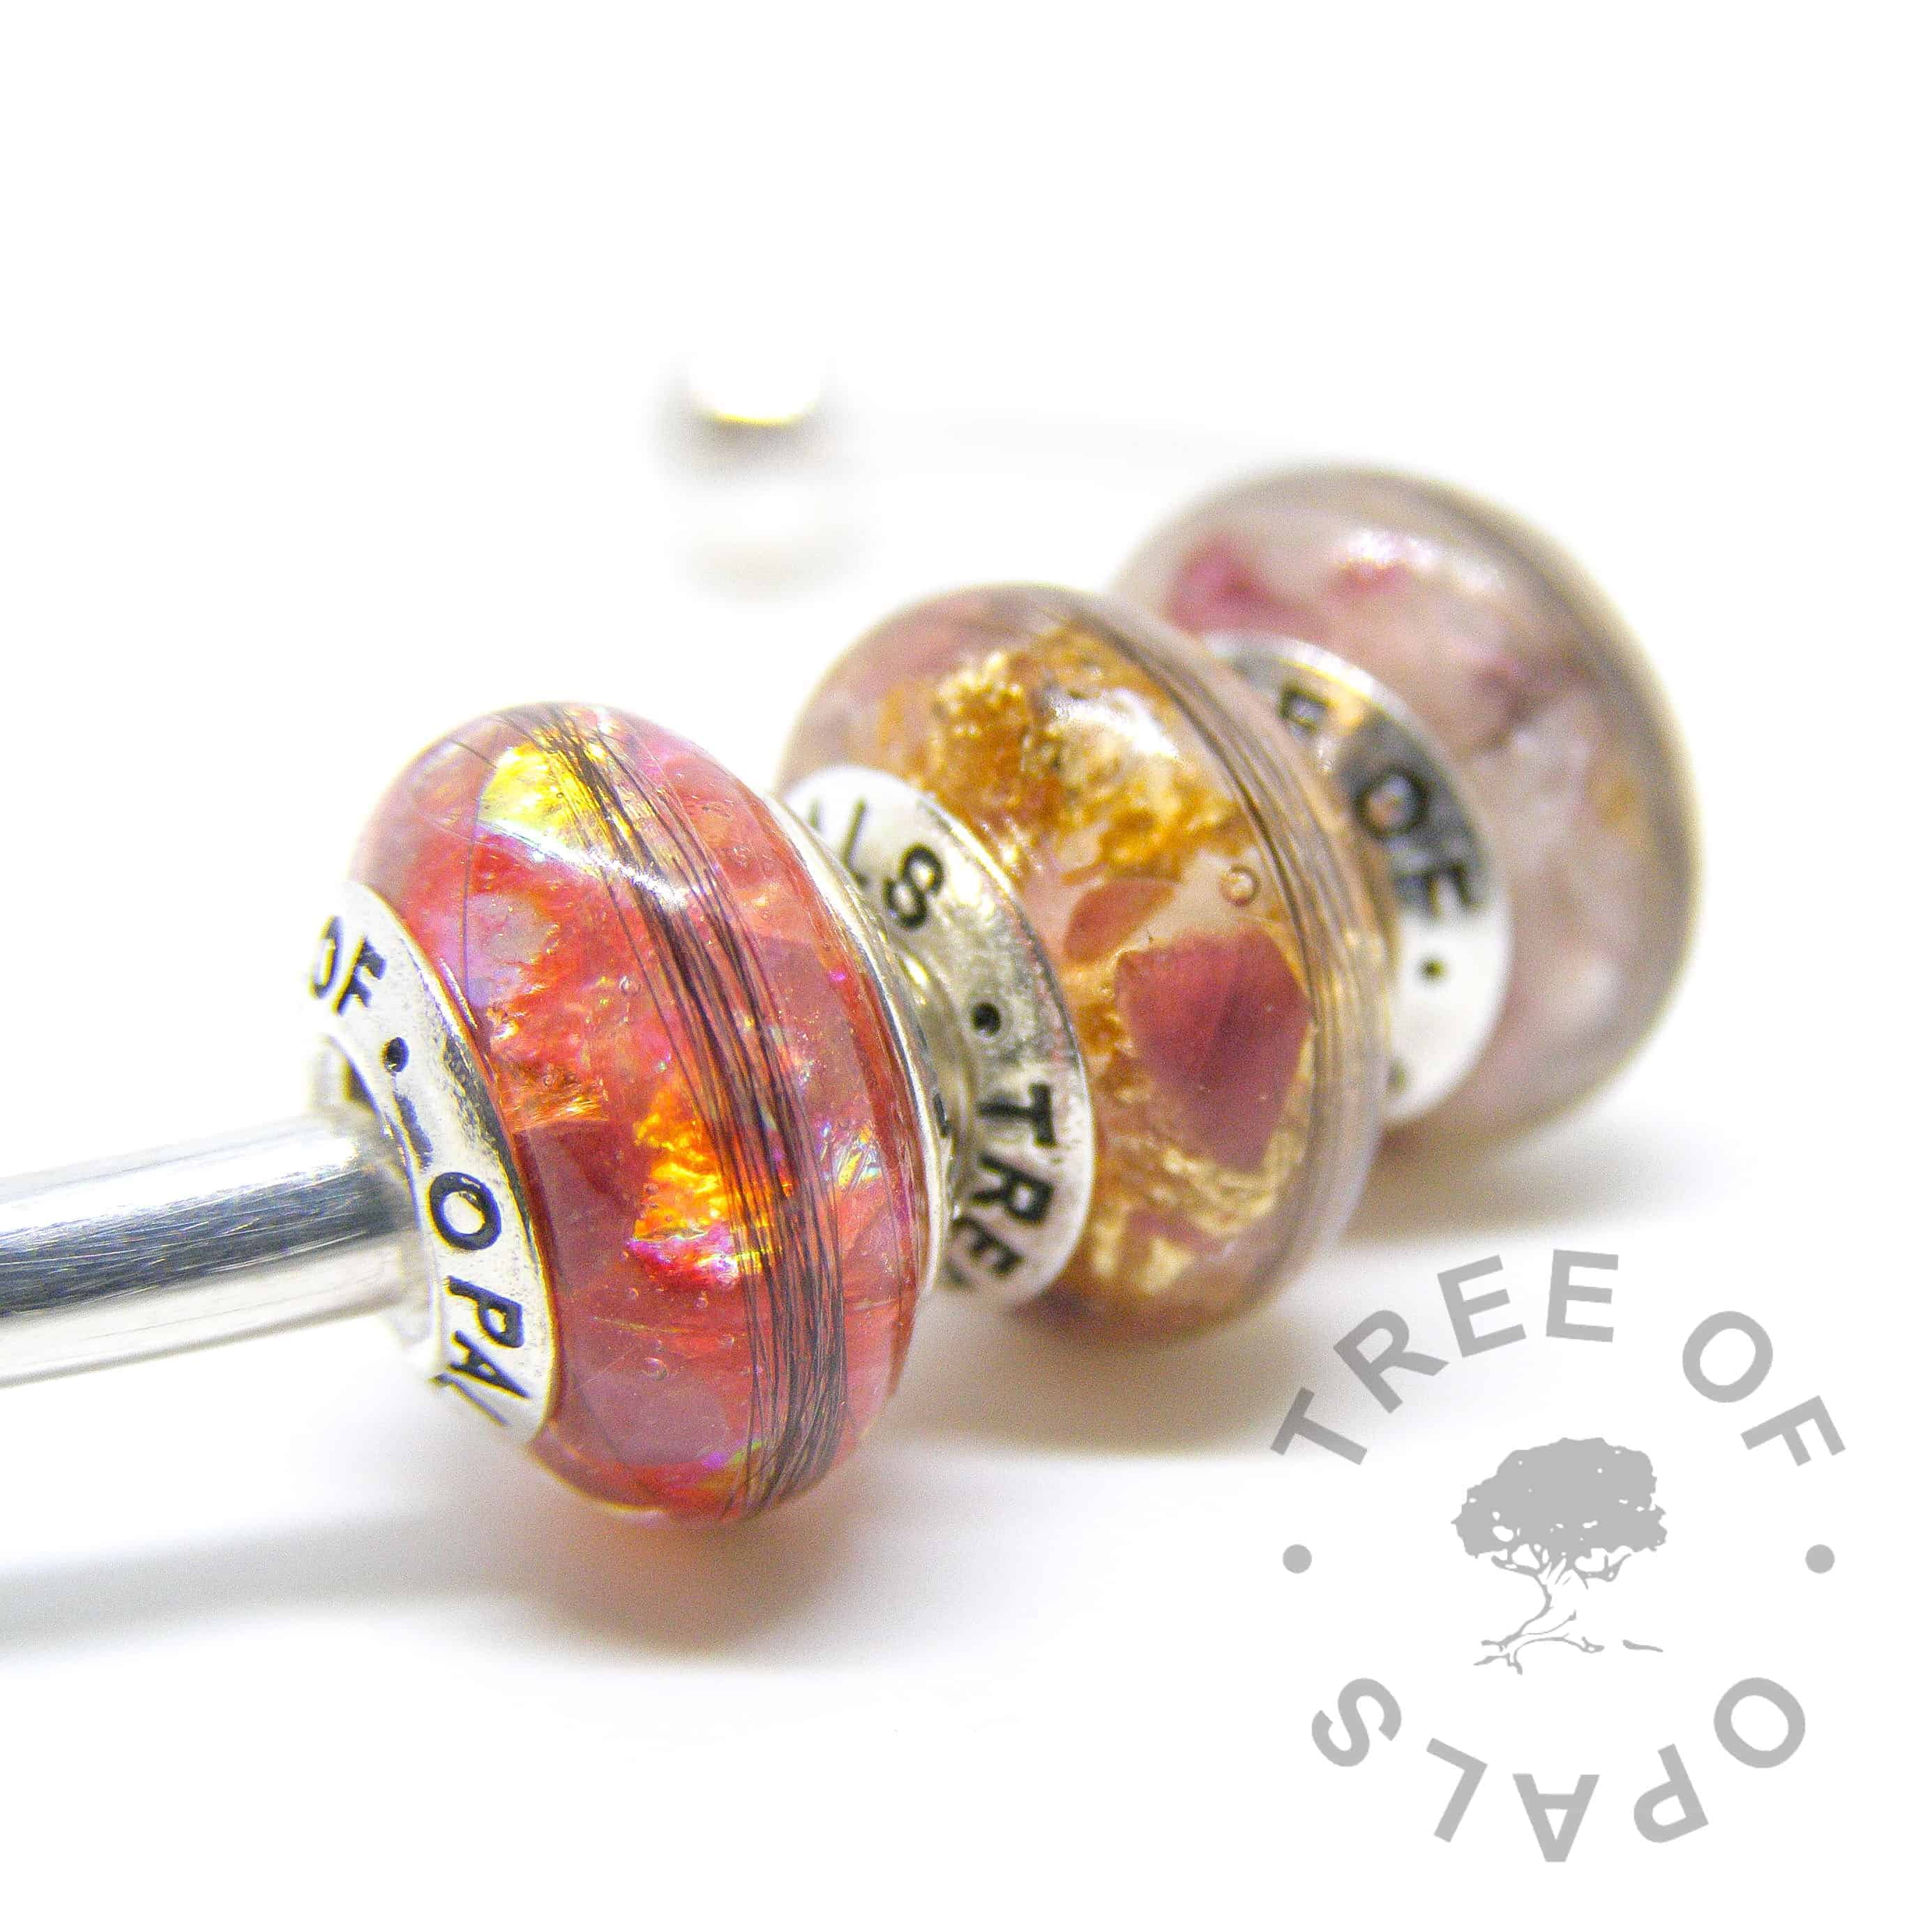 lock of hair charm bead trio in resin, ruby July birthstone, red opalescent flakes and genuine gold leaf with solid sterling silver Tree of Opals branded cores